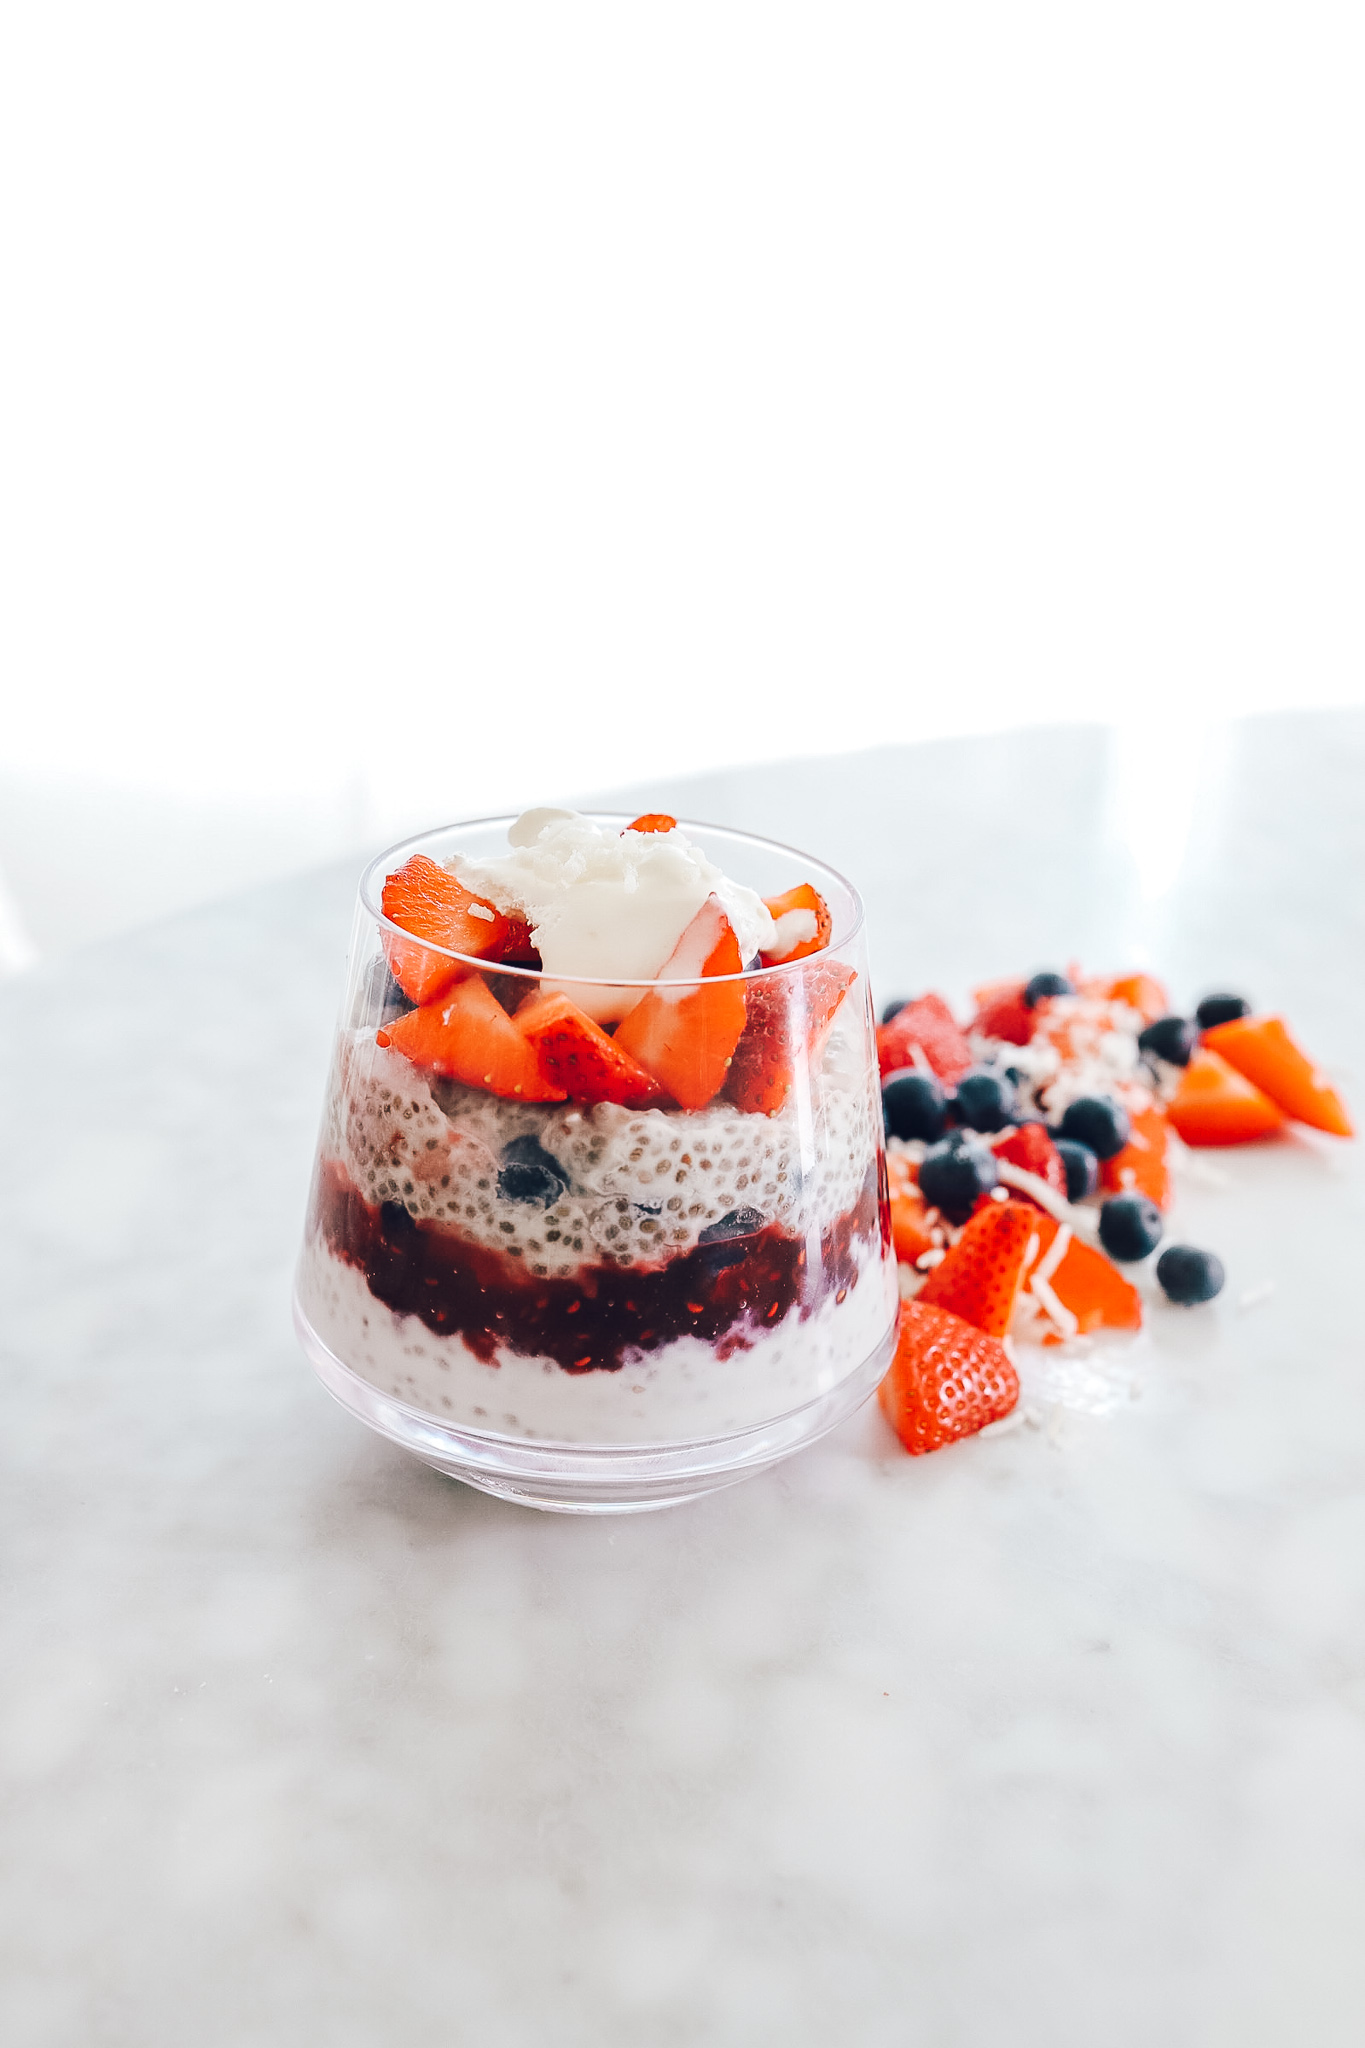 chia seed pudding recipe - Cooking with Confetti